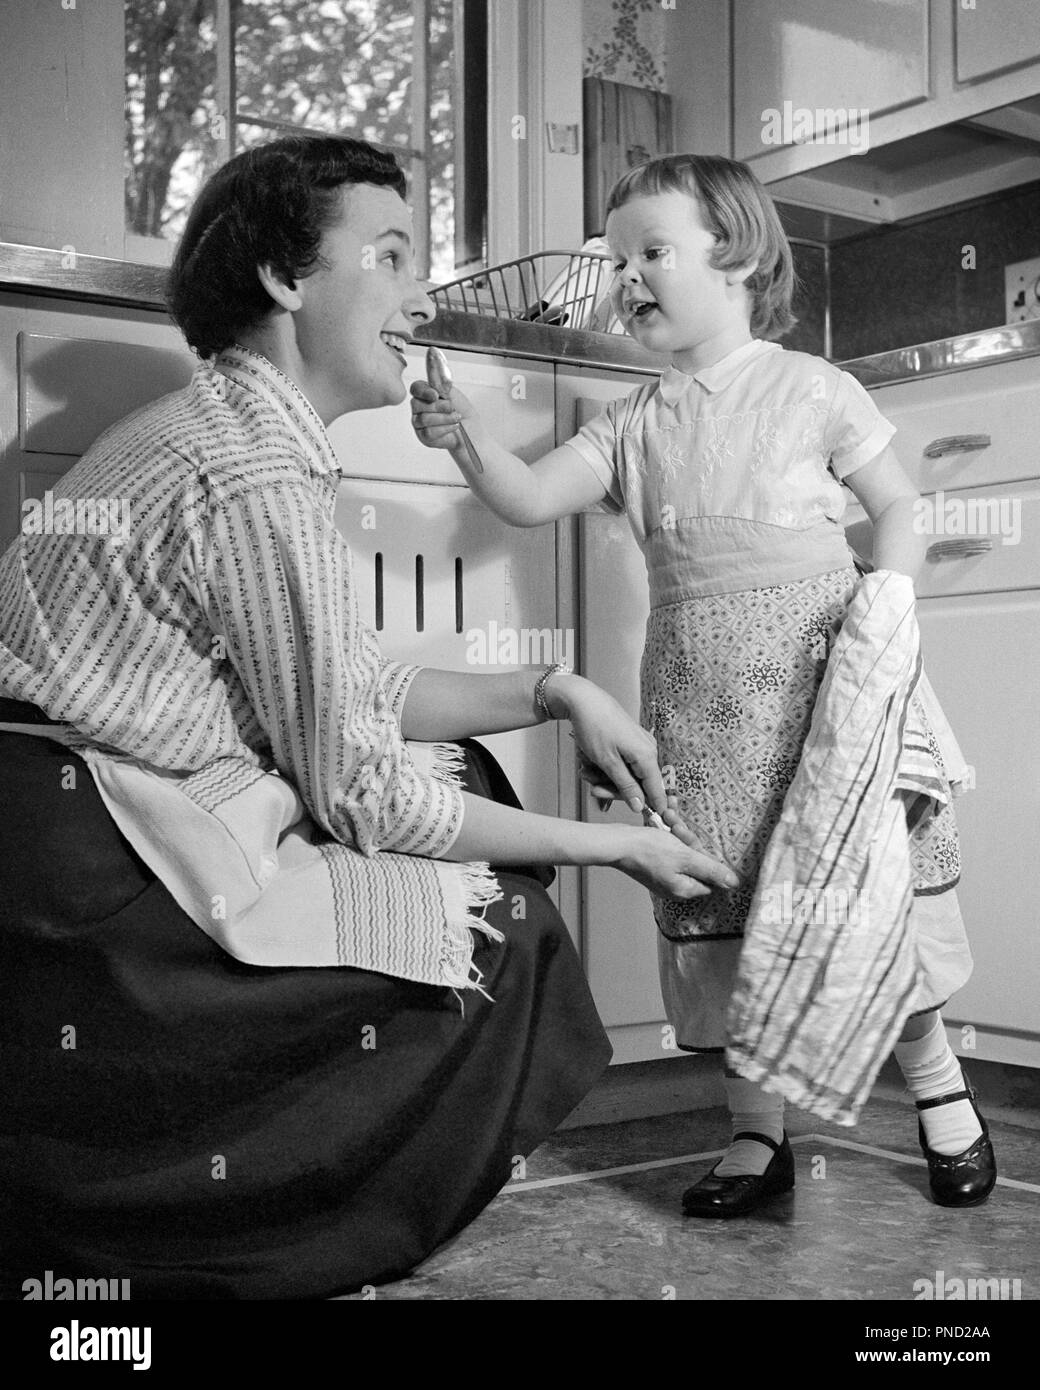 1950s LITTLE GIRL AND MOTHER IN KITCHEN BOTH WEARING APRONS GIRL HOLDING DISH TOWEL GESTURING TO MOTHER - j8225 HBB001 HARS OLD TIME BUSY NOSTALGIA GOOD OLD FASHION 1 TOWEL JUVENILE STYLE COMMUNICATION LAUGH DISH TEAMWORK PLEASED JOY LIFESTYLE FEMALES HEALTHINESS HOME LIFE FULL-LENGTH LADIES DAUGHTERS PERSONS CARING CONFIDENCE GESTURING APRONS B&W HOMEMAKER HAPPINESS HOMEMAKERS CHEERFUL BOTH AND EXCITEMENT MARY JANE HOUSEWIVES SMILES CONNECTION HELPFUL JOYFUL STYLISH THUMBS UP BEHAVIOR GROWTH JUVENILES MID-ADULT MID-ADULT WOMAN MOMS TOGETHERNESS BLACK AND WHITE CAUCASIAN ETHNICITY - Stock Image